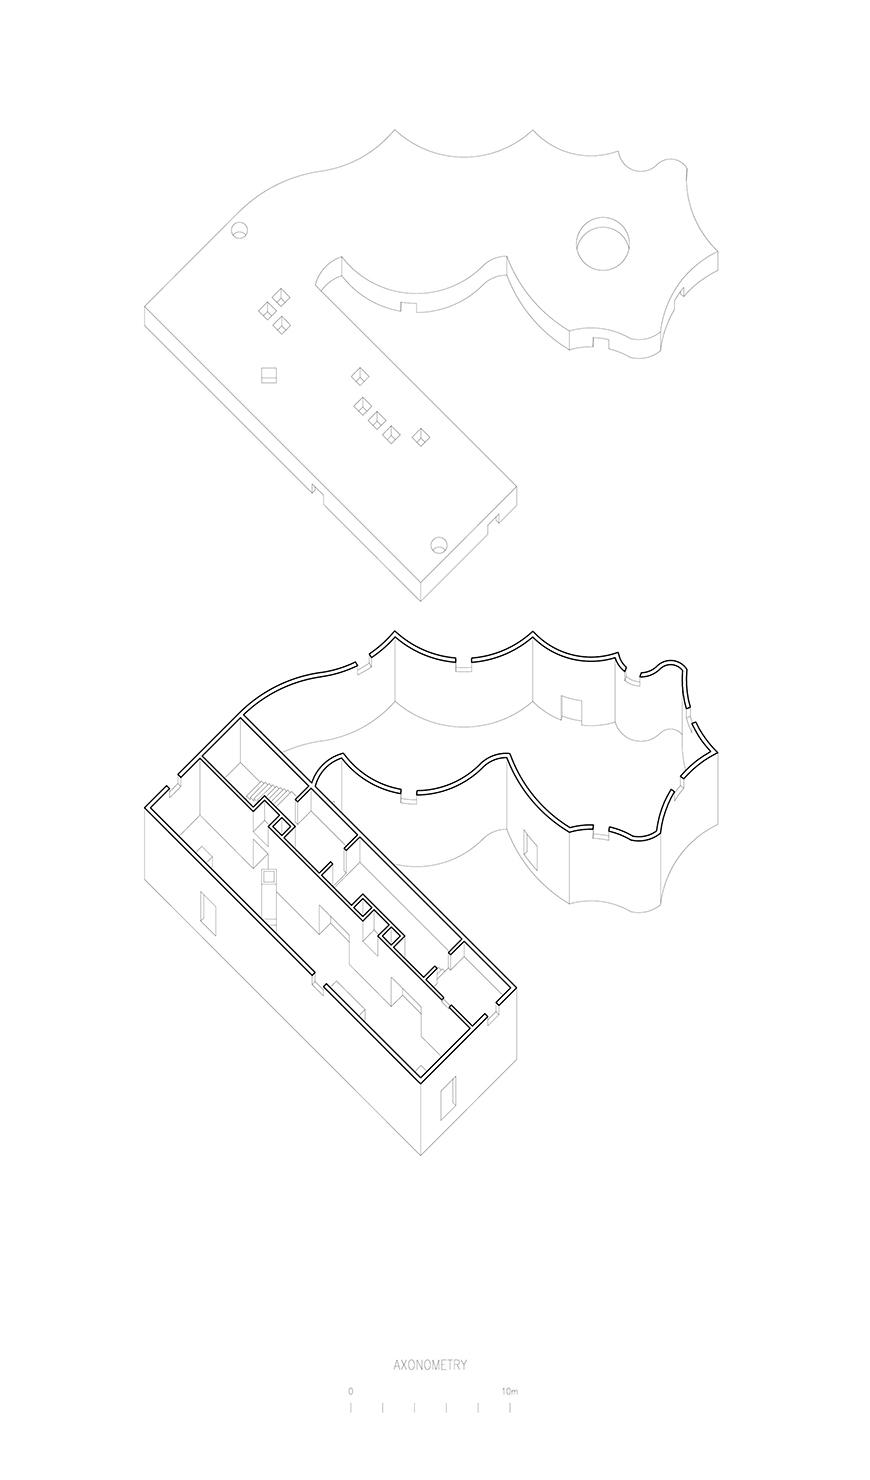 Axonometric without roof showing the interior of the house with one strange form attached to a rectangle.